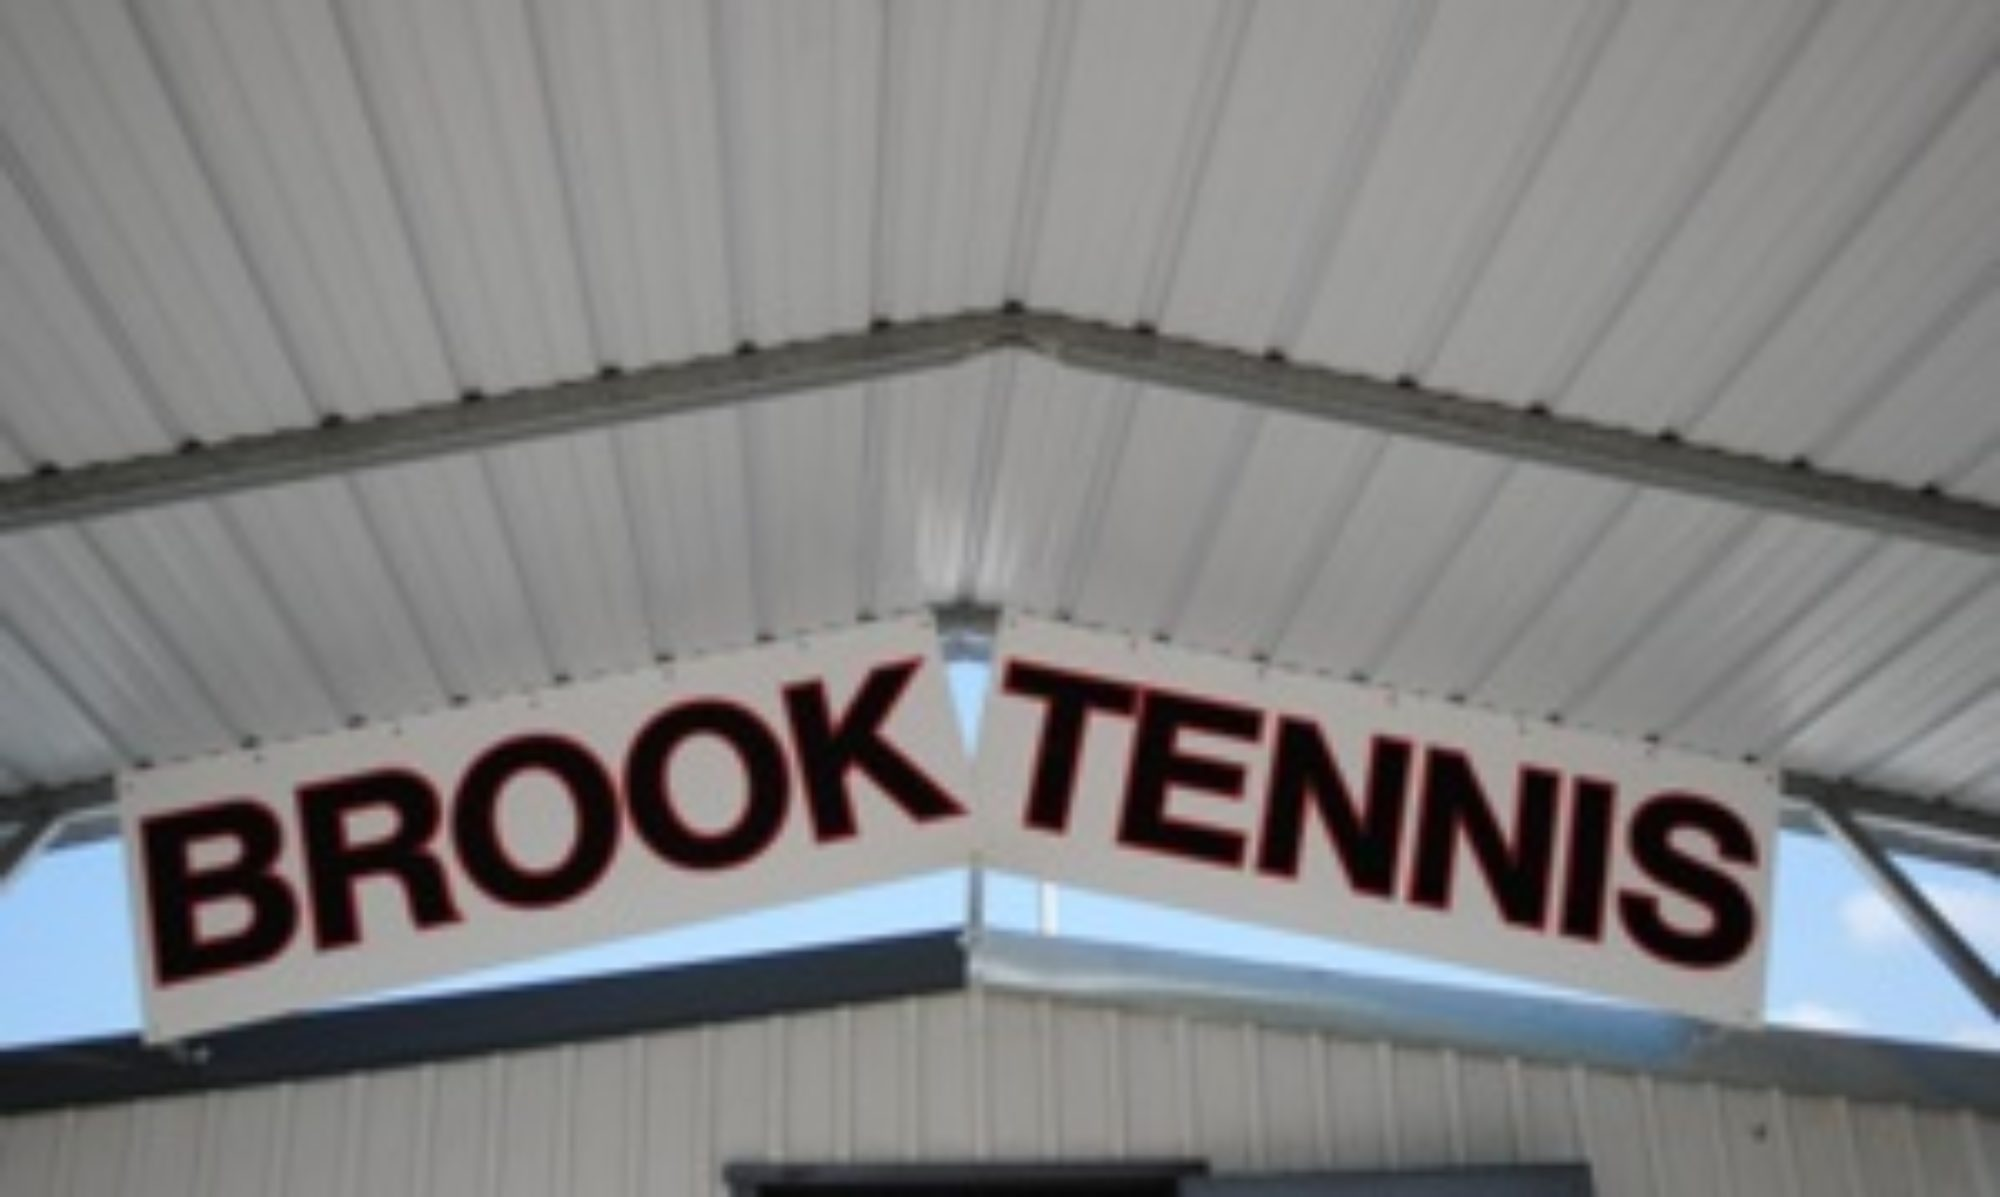 Clear Brook Tennis